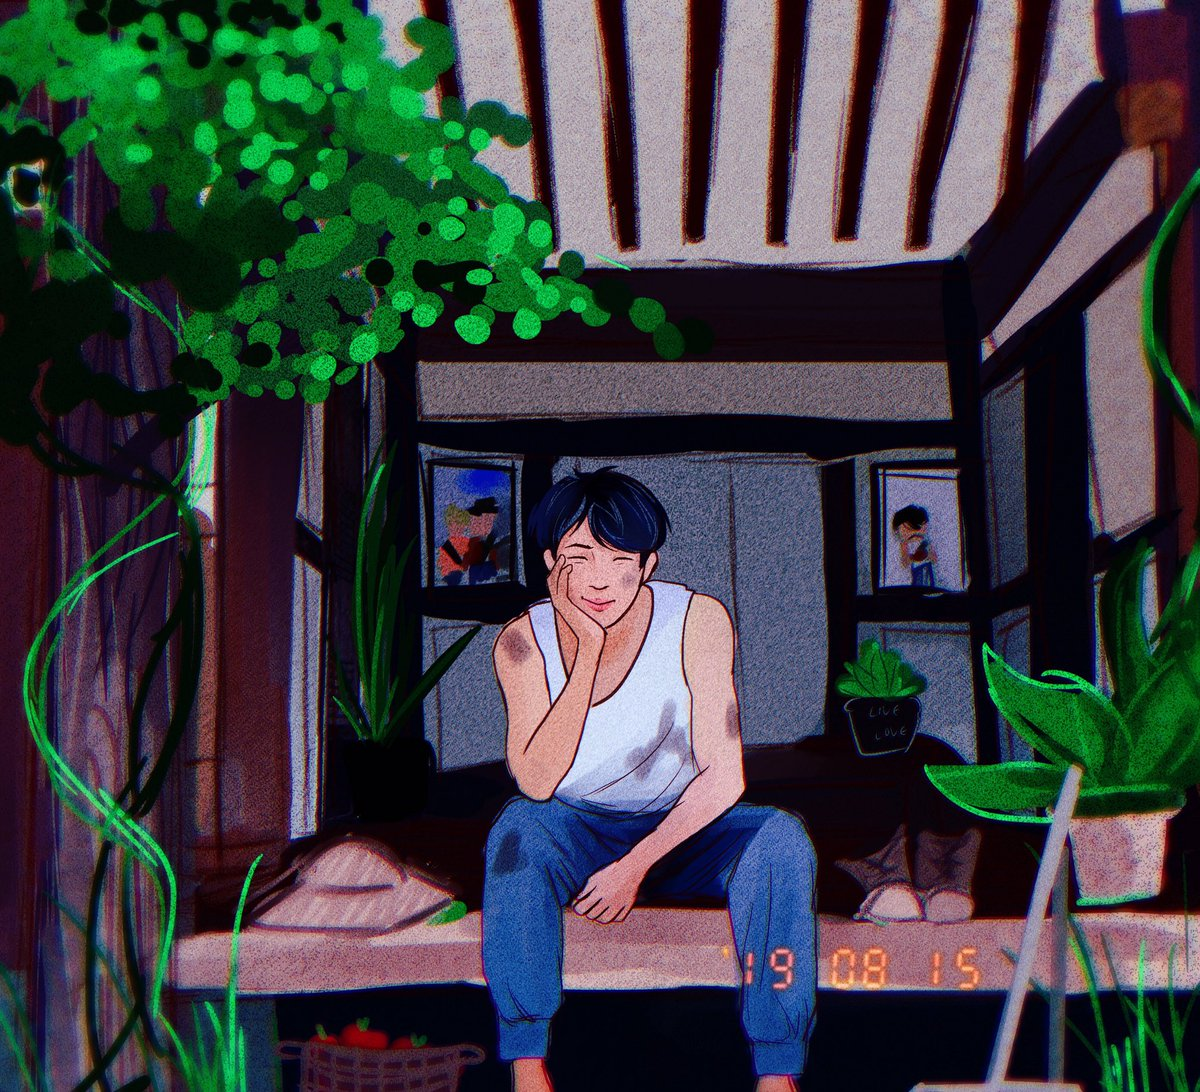 Farmer Namjoon let's his plants grow wherever they desire 💗 #namjoon #btsfanart